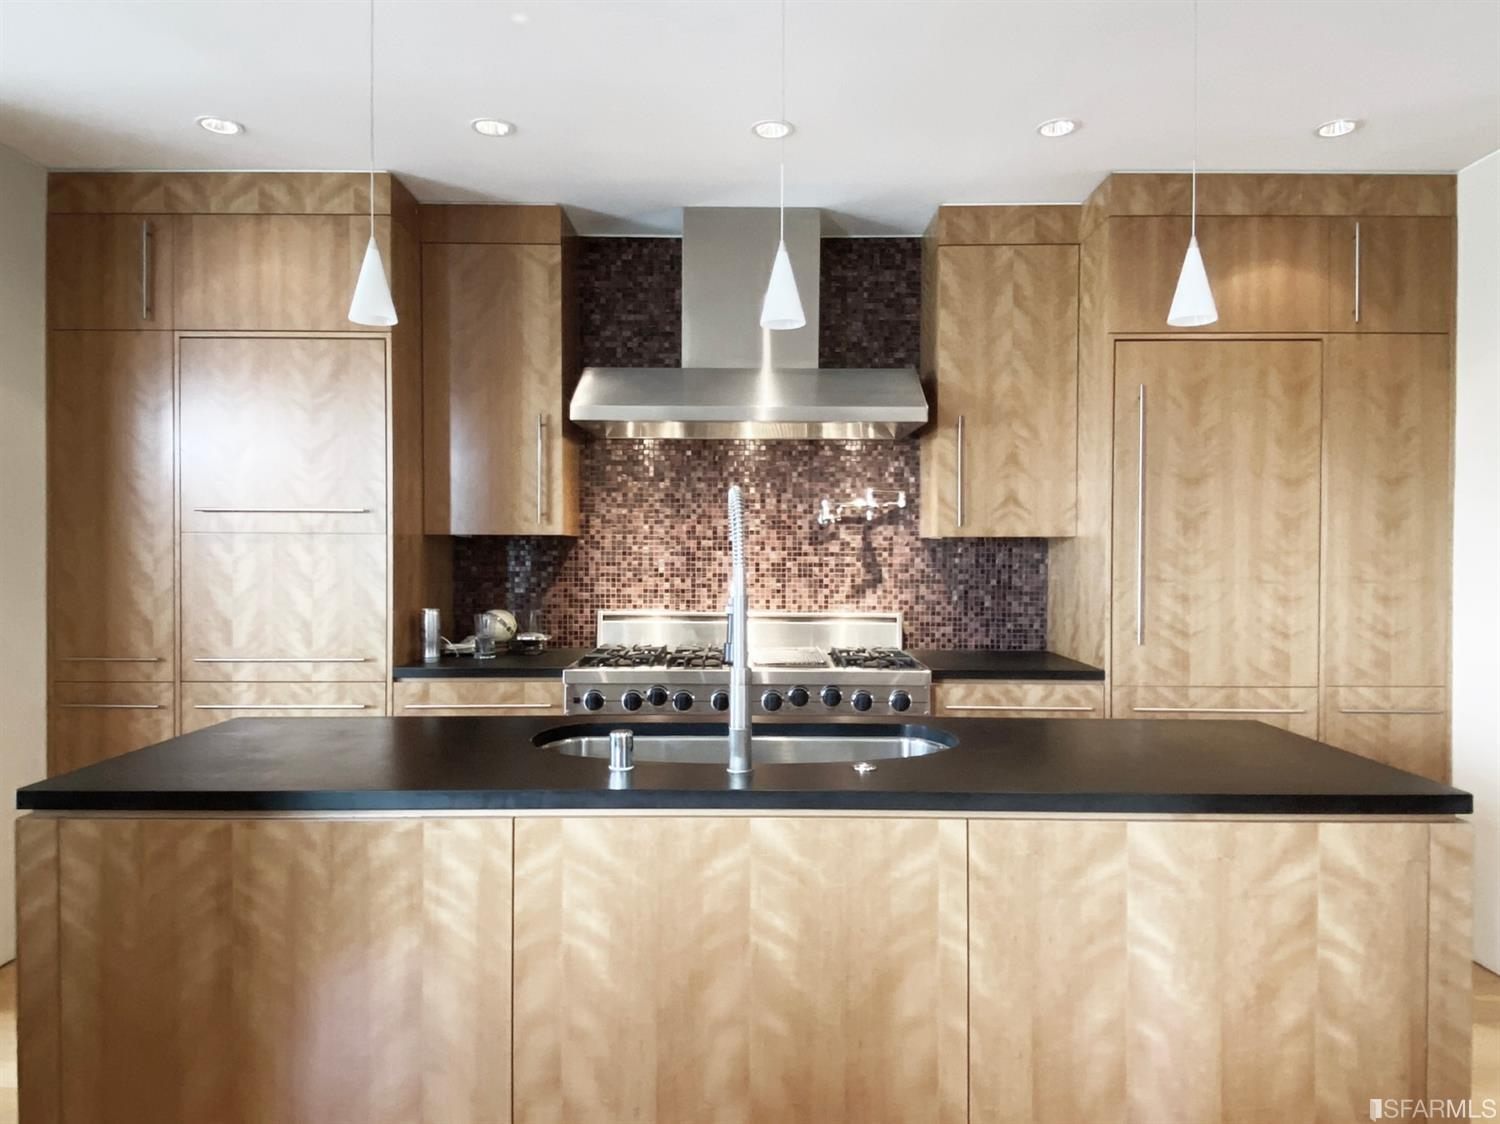 Designer chef's kitchen with eco-friendly PaperStone counters, beautiful custom natural wood custom cabinetry and counter-to-c